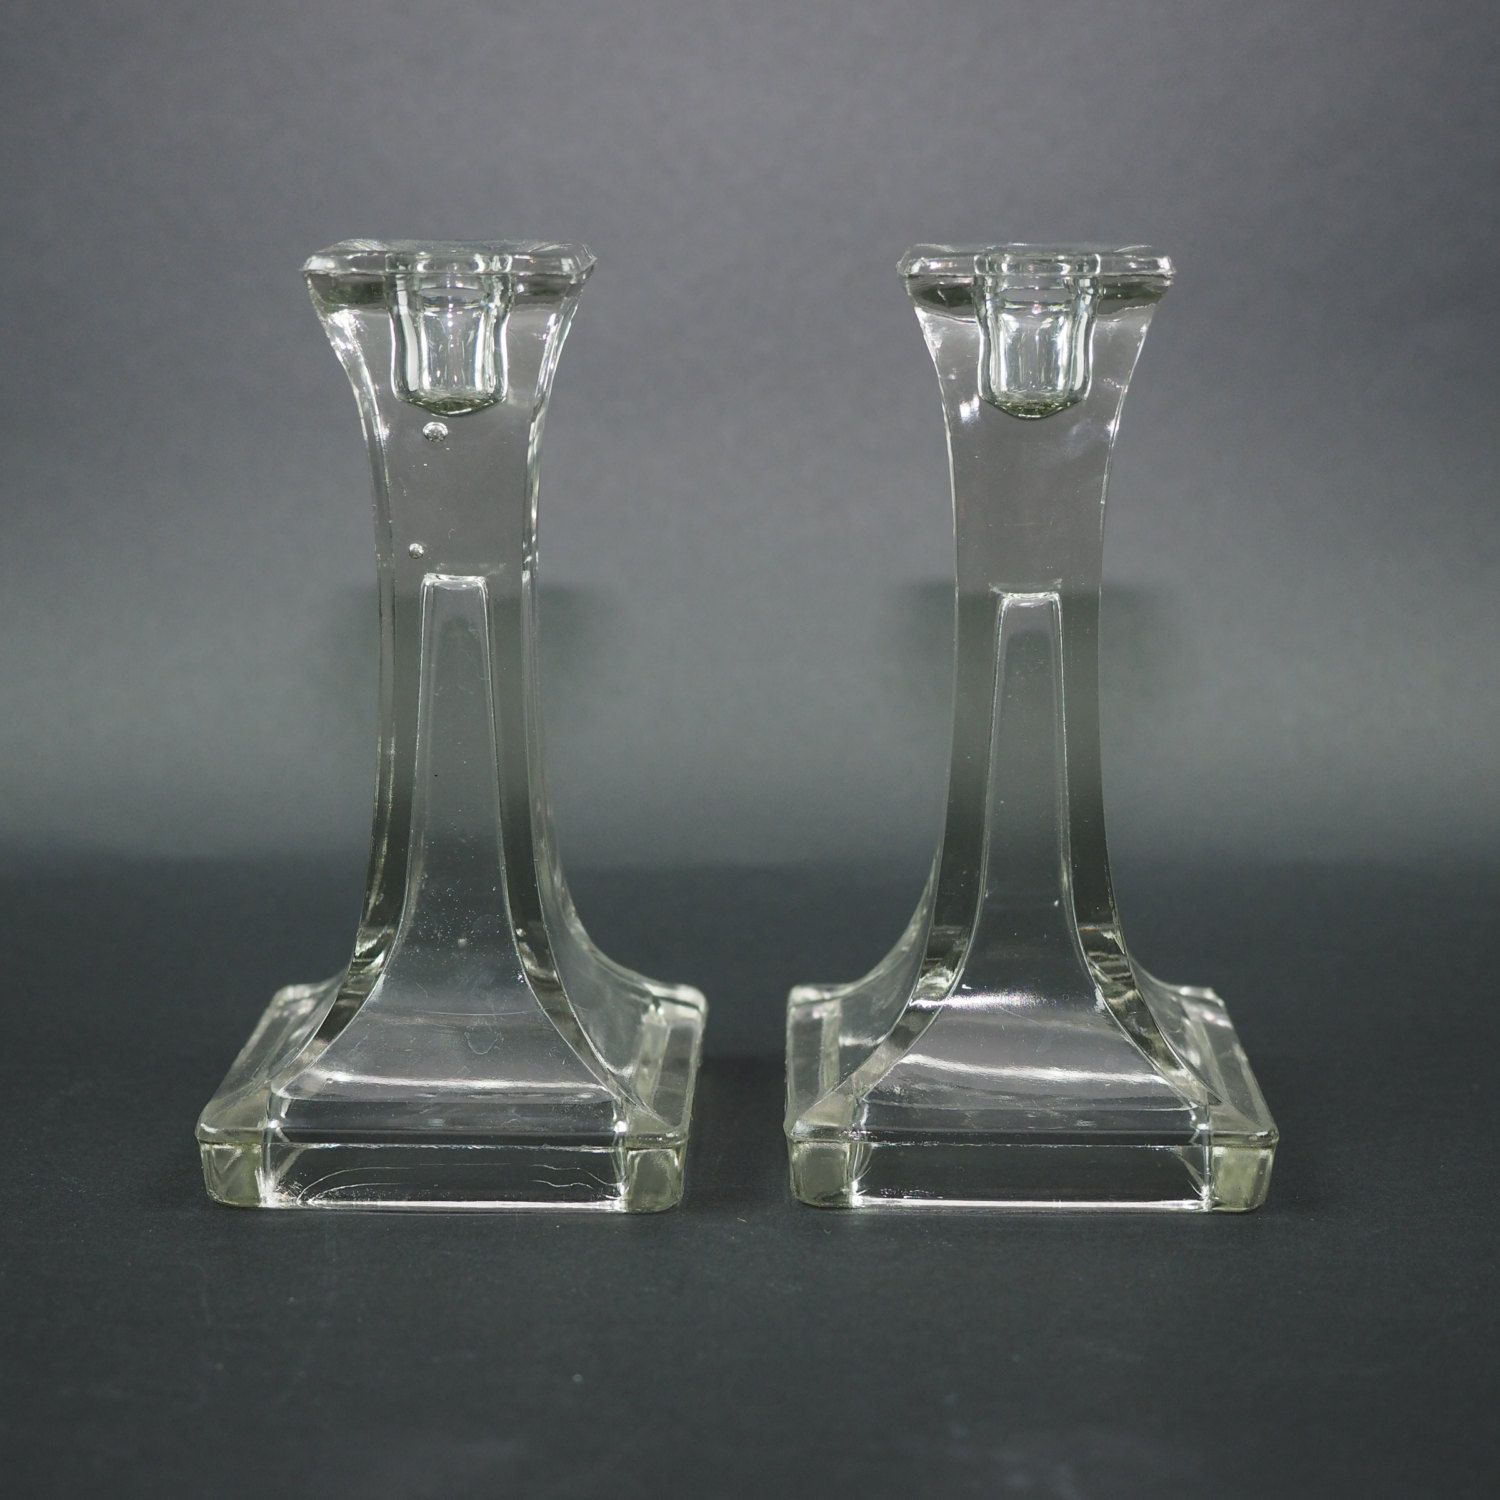 clear glass candlestick holders set of 2 vintage l e smith 500 clear glass candlestick holders set of 2 vintage l e smith 500 imperial